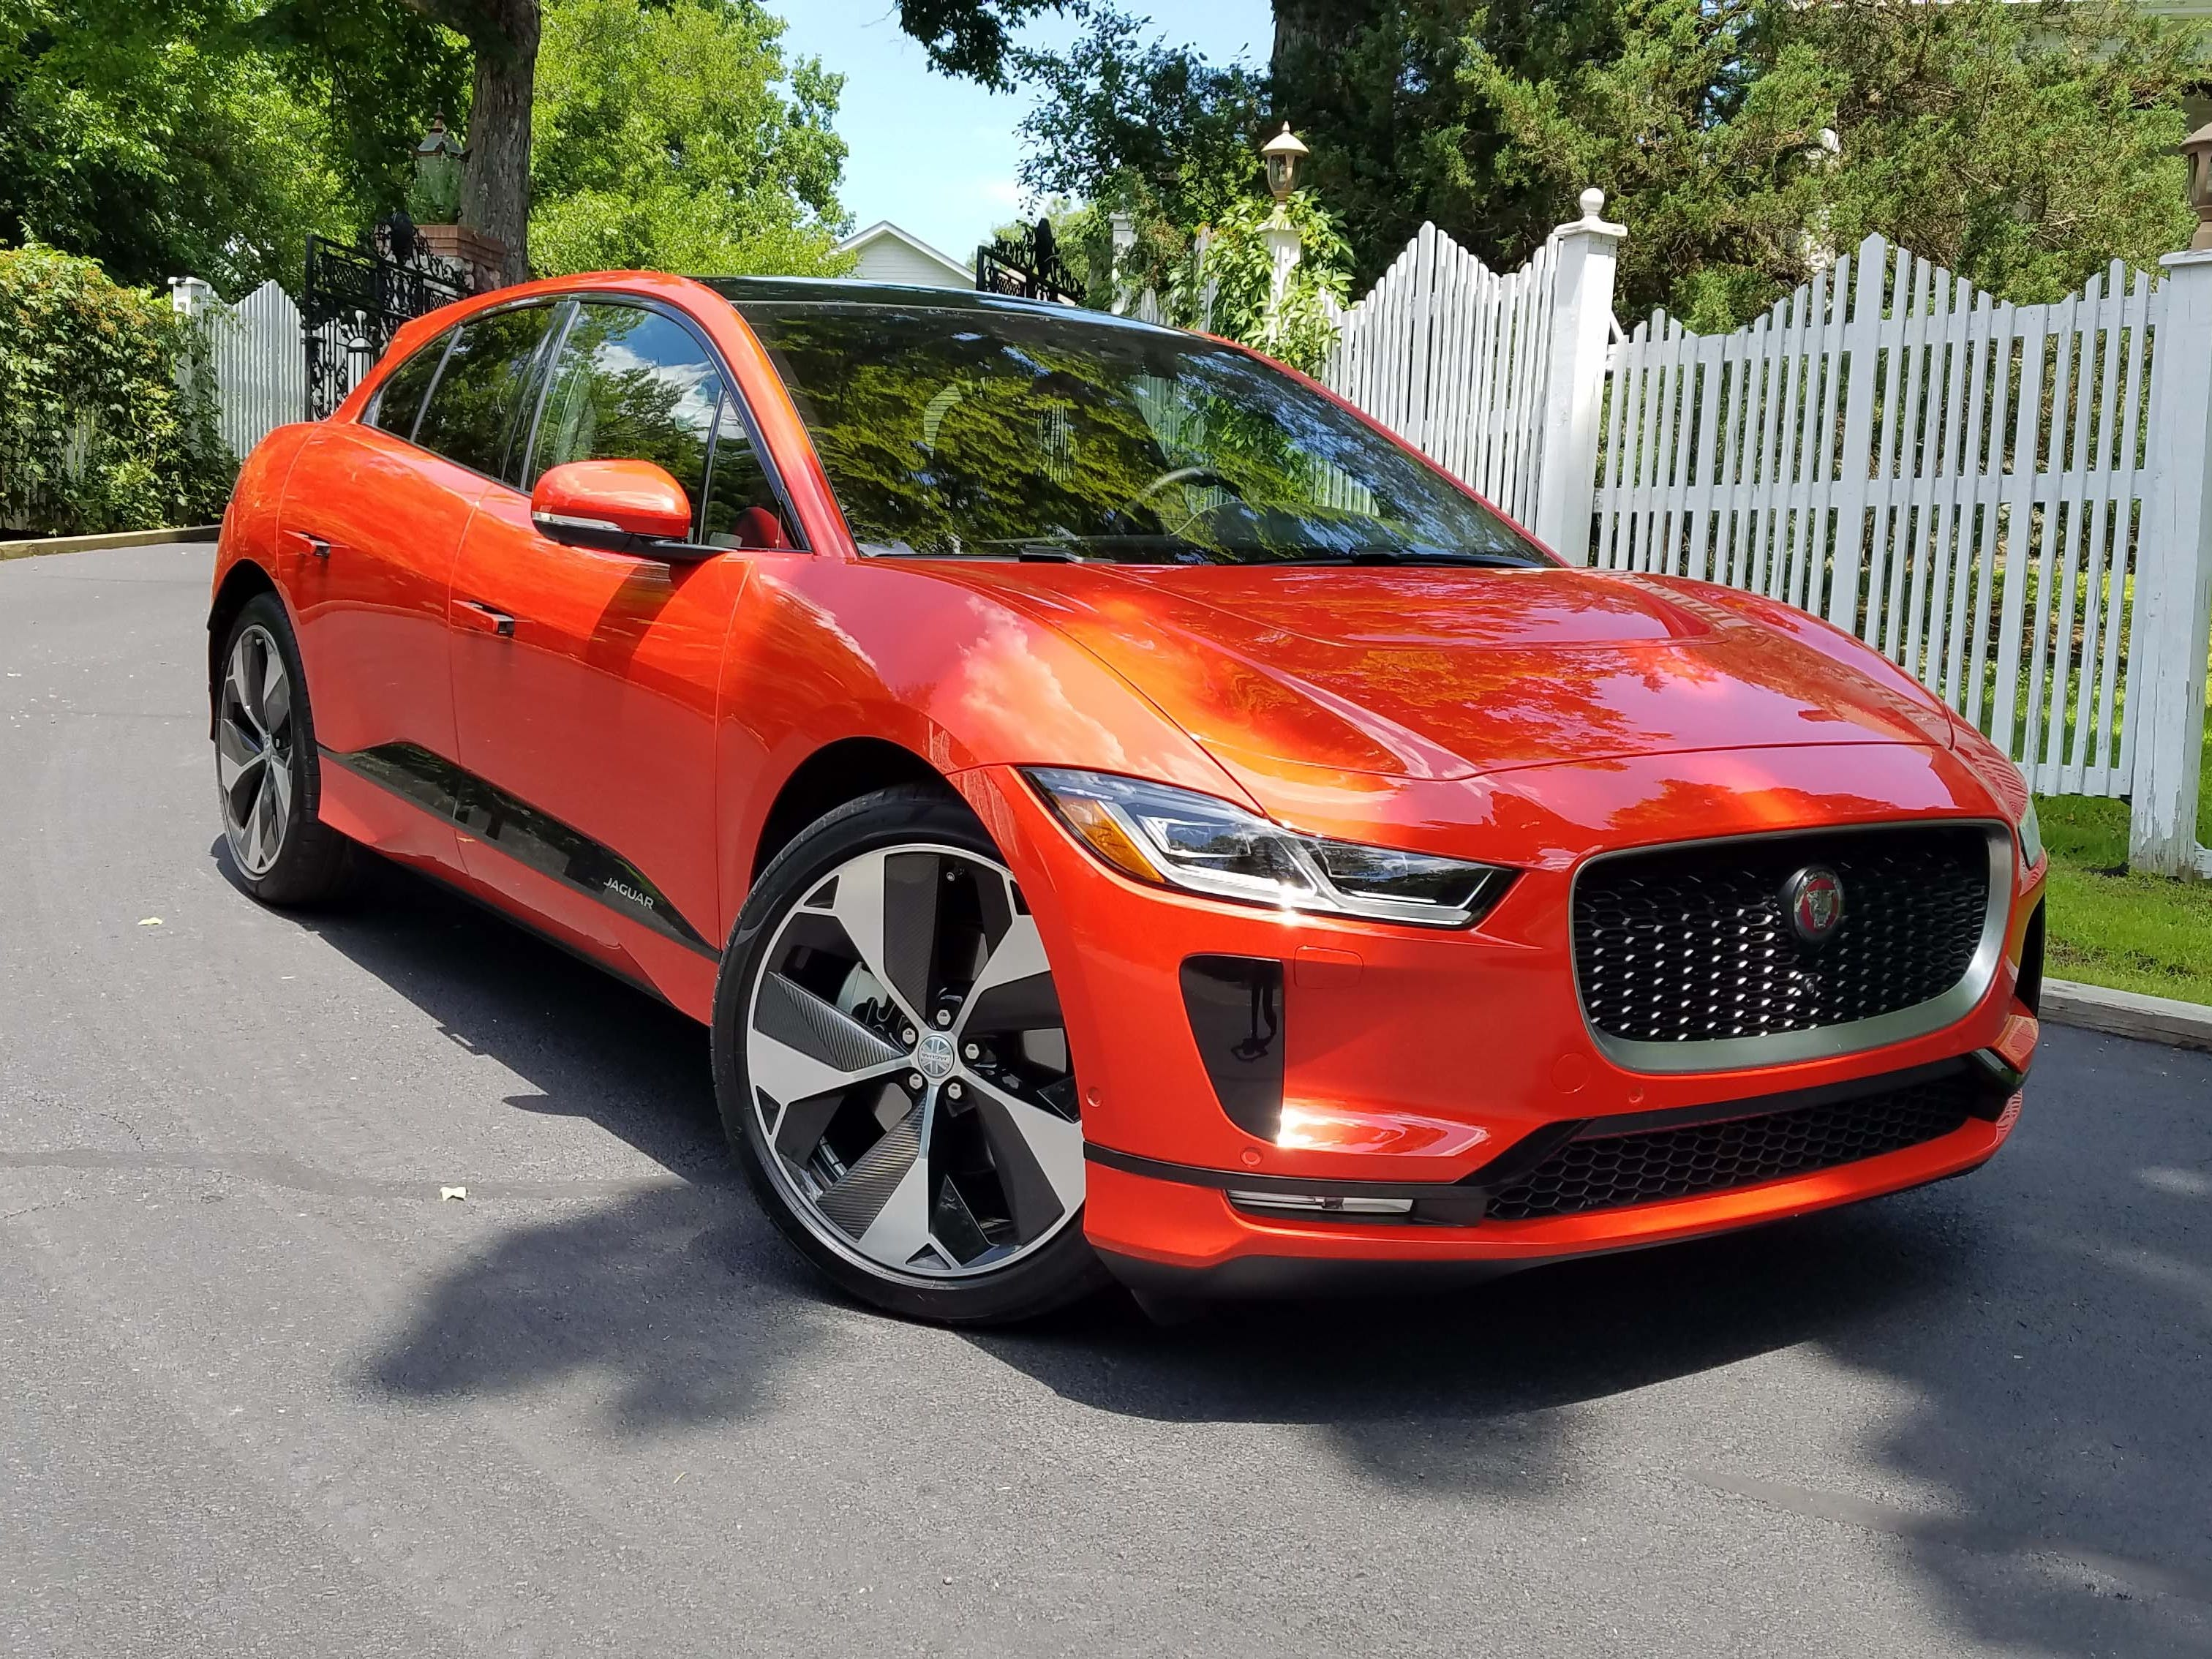 The Jaguar I-Pace bears familiar brand touches like angled headlights and open grille. A low roof line and deeply-scalloped rocker panels also give the exterior a unique character.